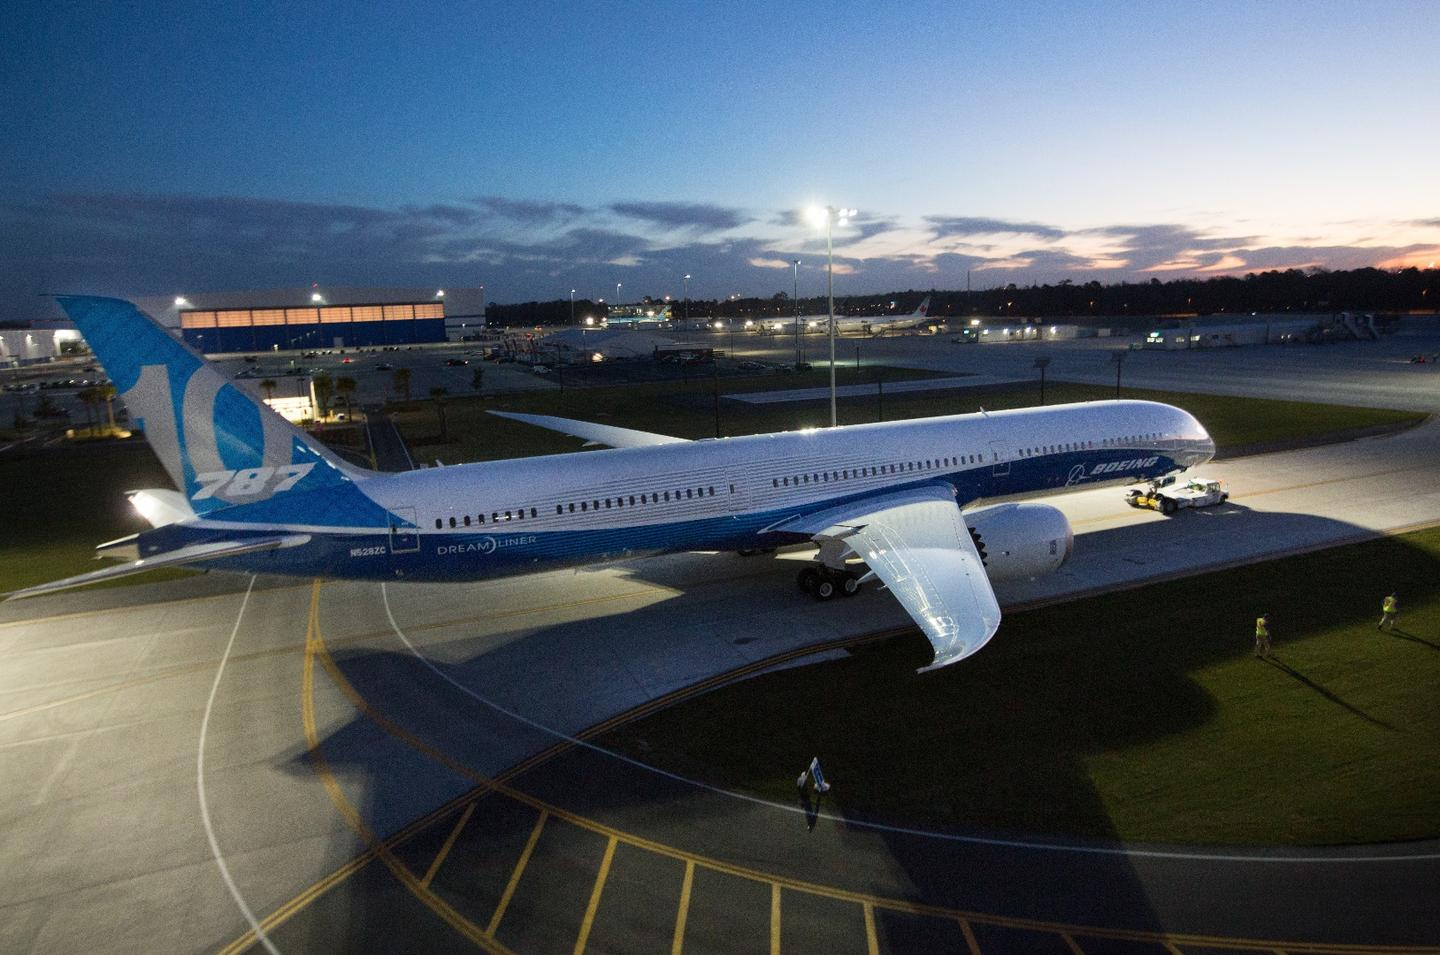 The new 787-10 Dreamliner was launched in South Carolina today